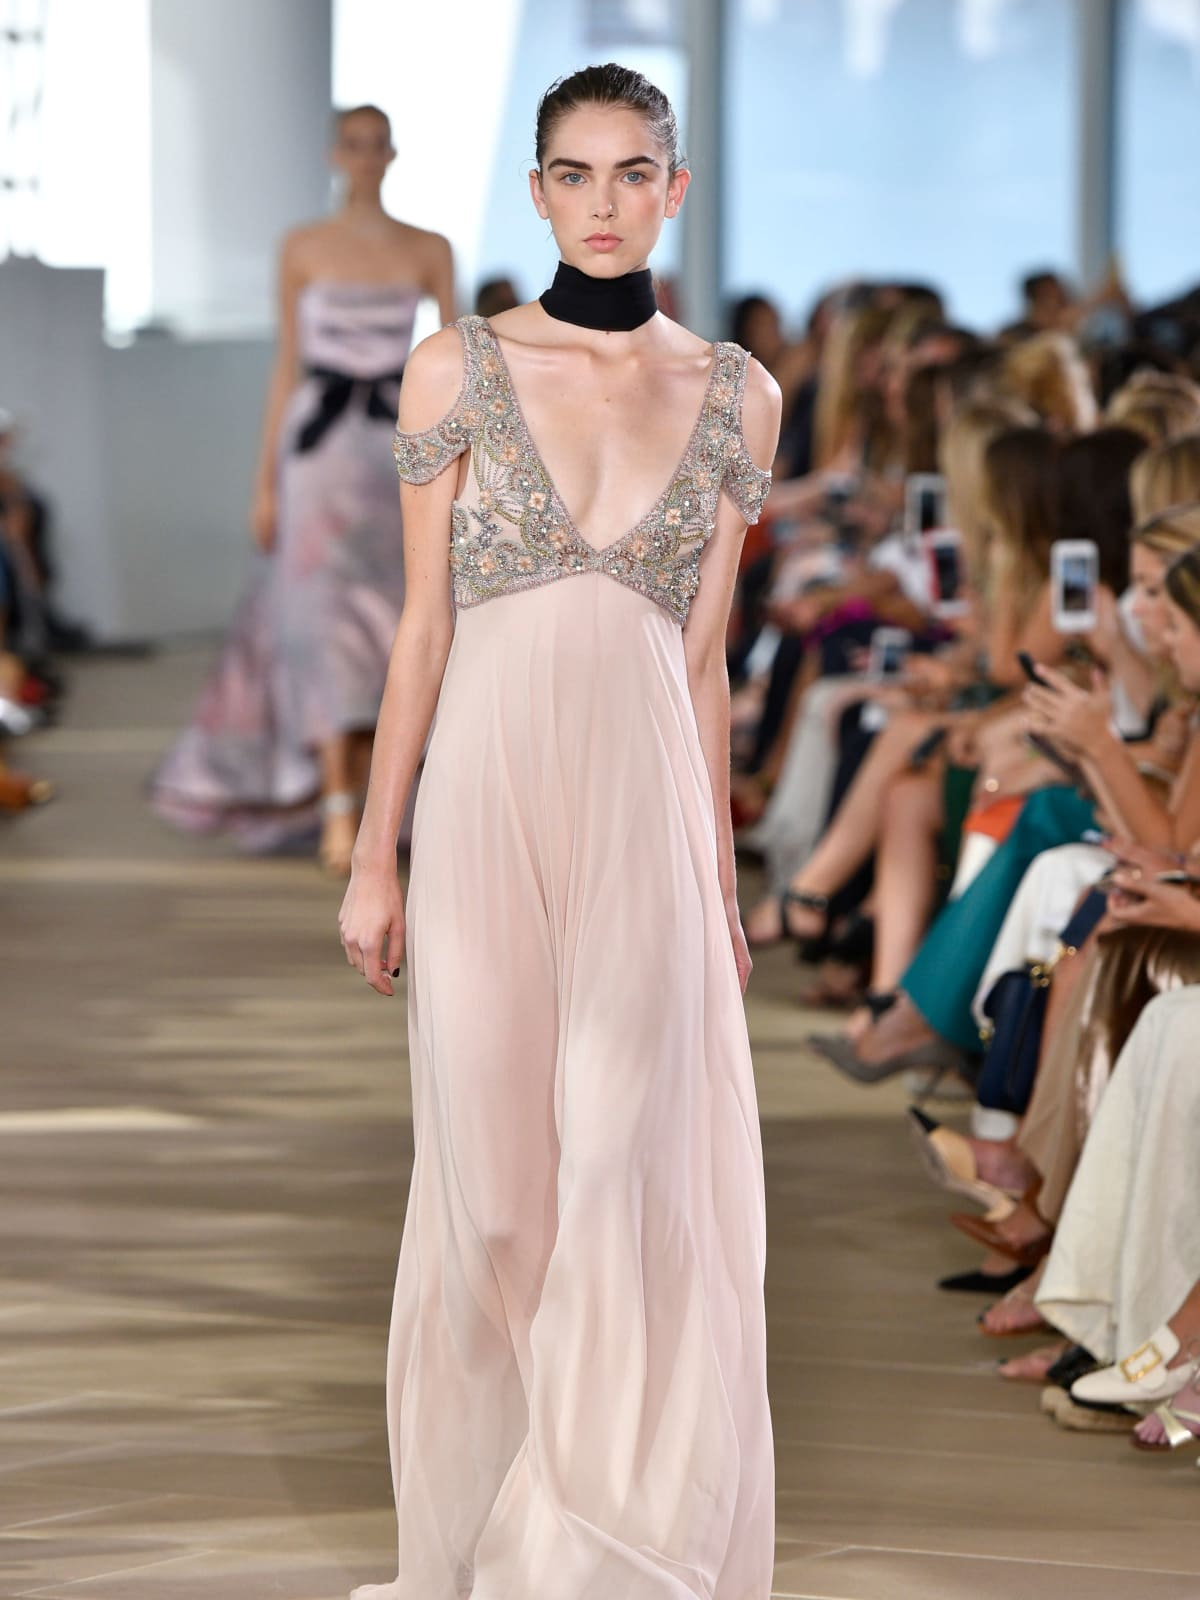 Monique Lhuillier celebrates 20th anniversary with romantic gowns ...